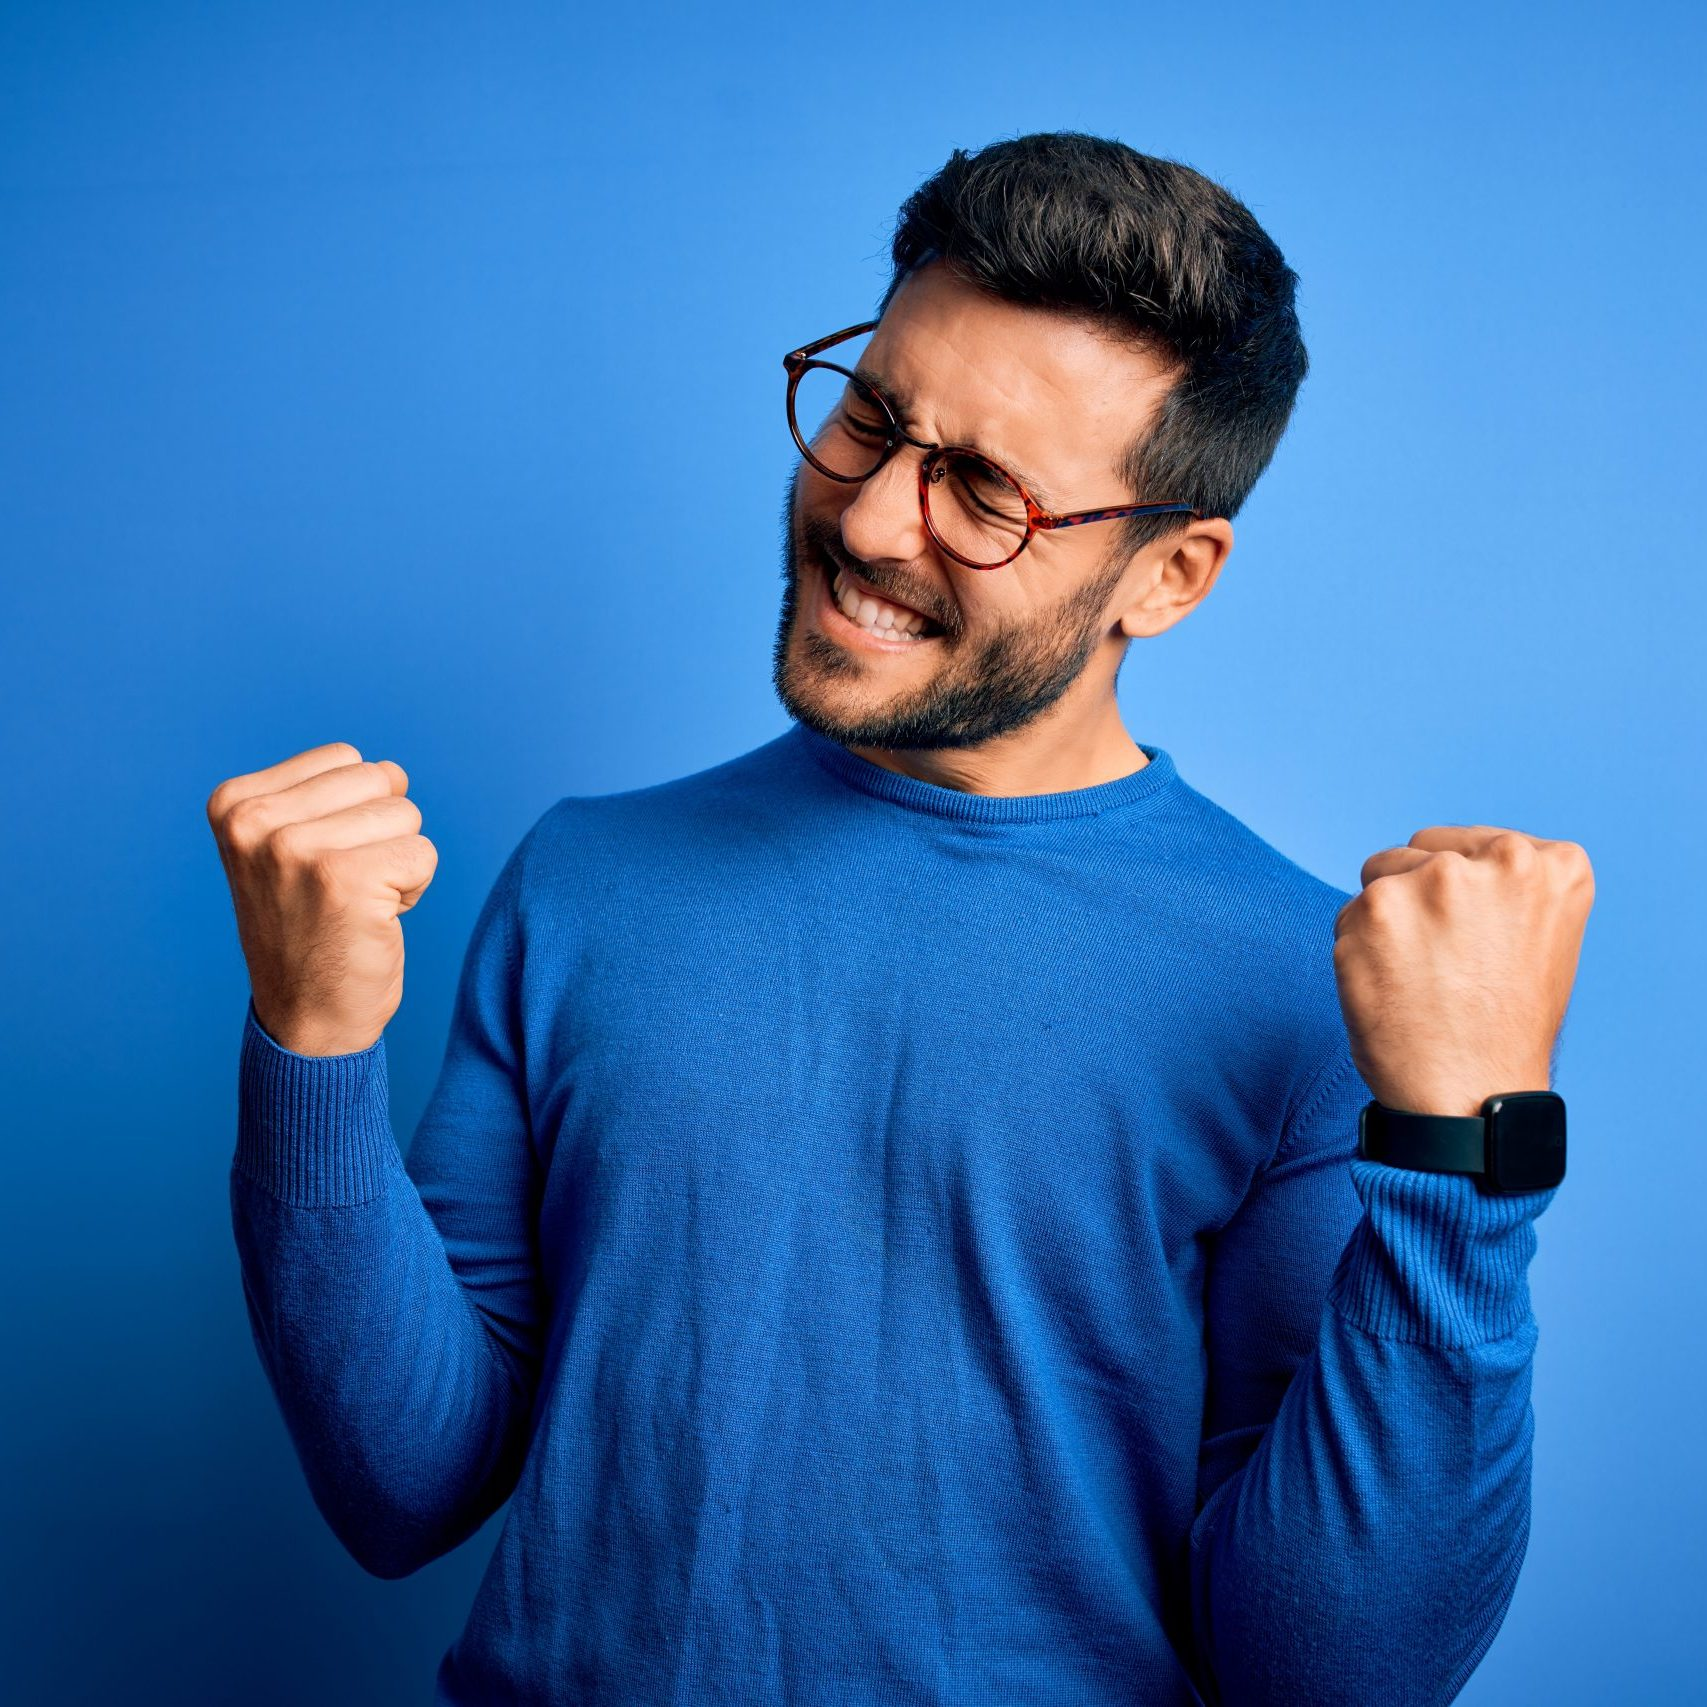 Young handsome man with beard wearing casual sweater and glasses over blue background very happy and excited doing winner gesture with arms raised, smiling and screaming for success. Celebration concept.